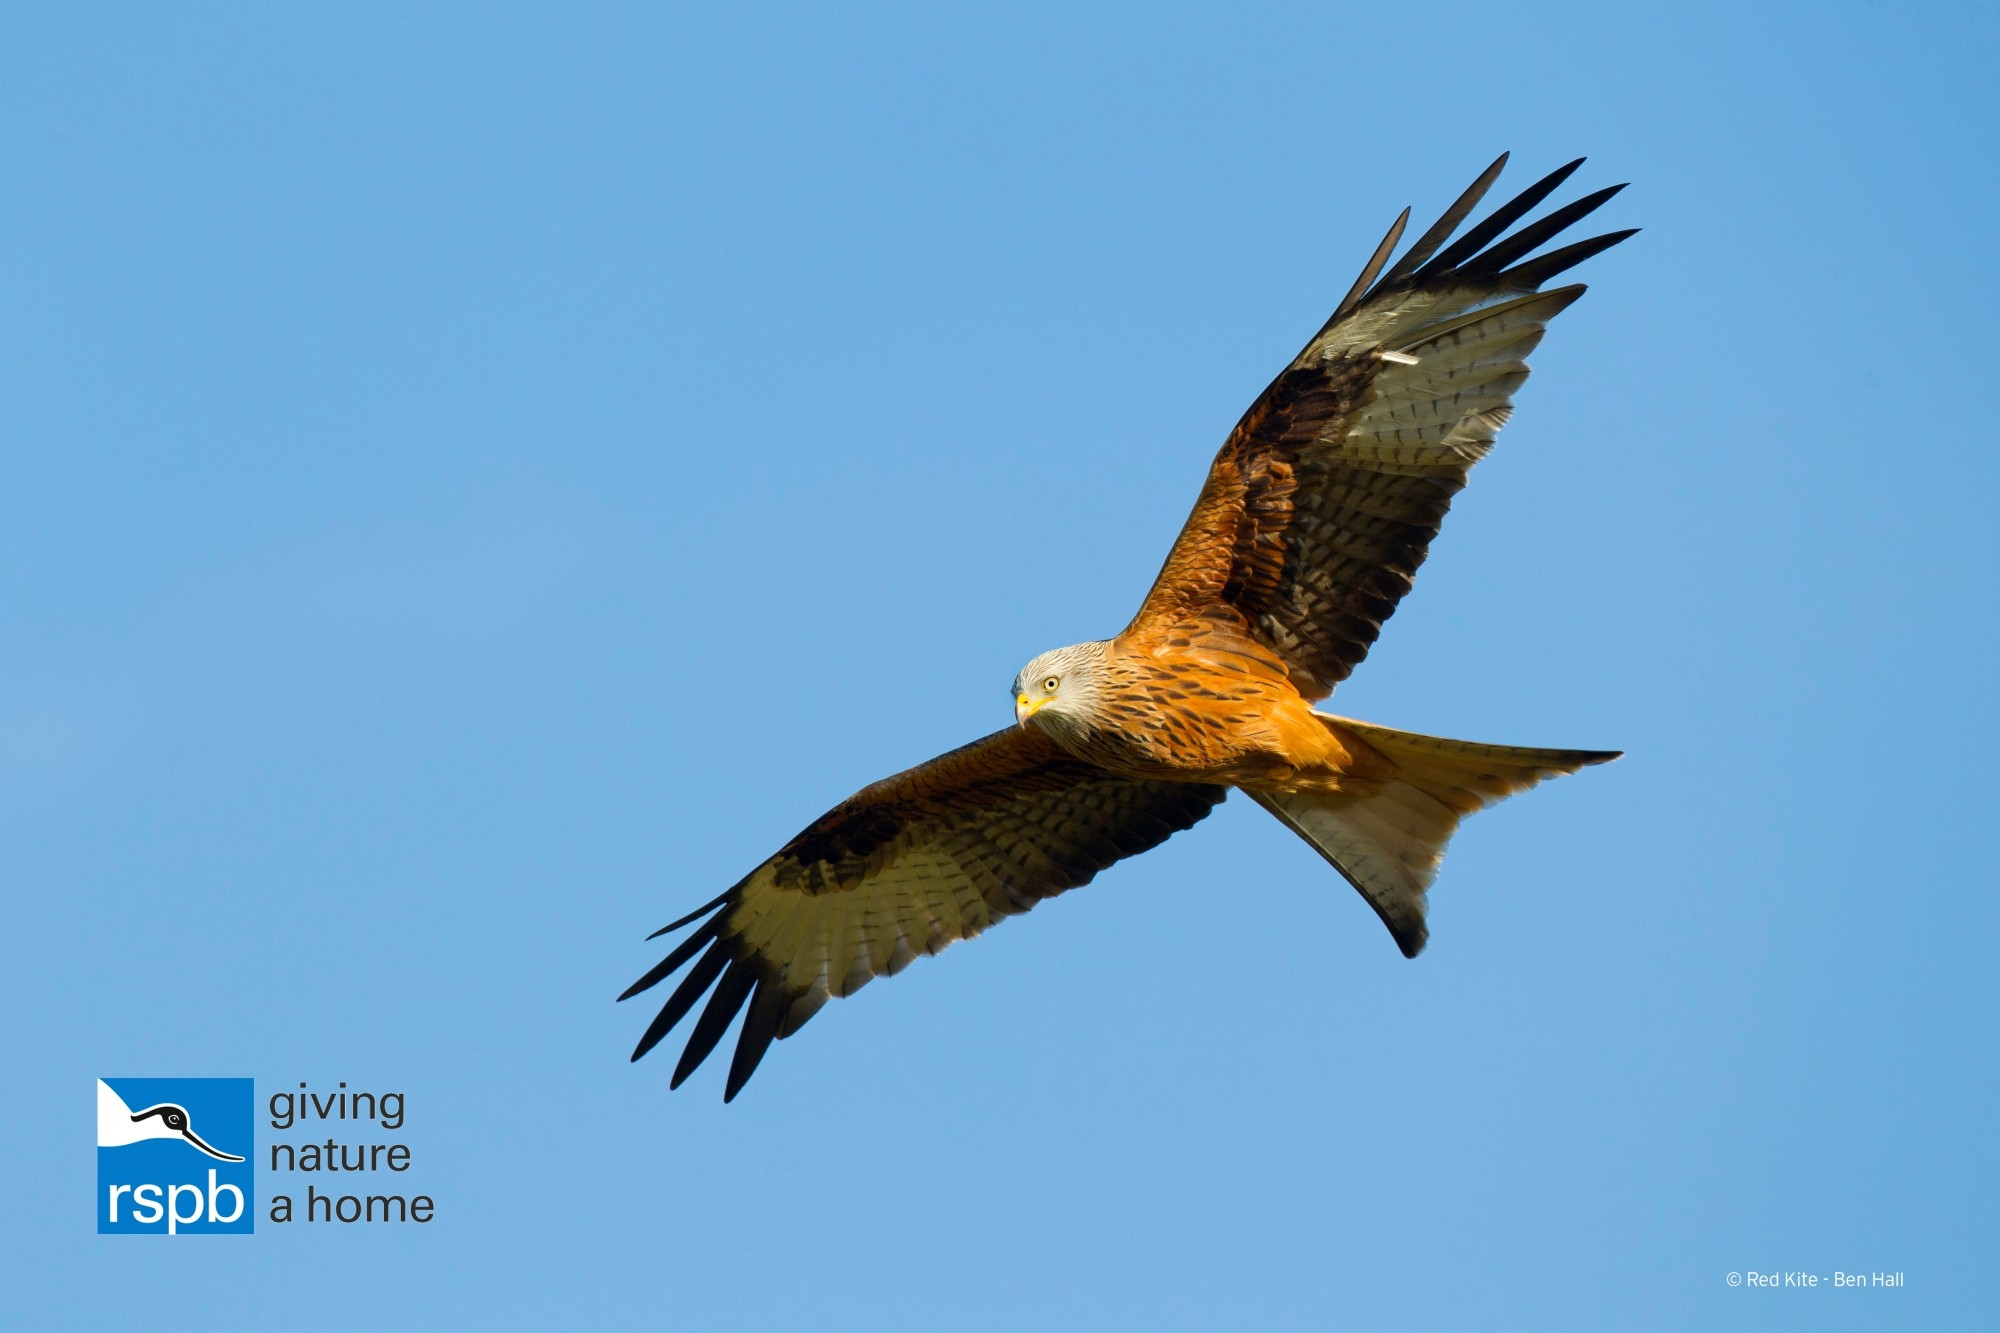 Red kite (c) Ben Hall